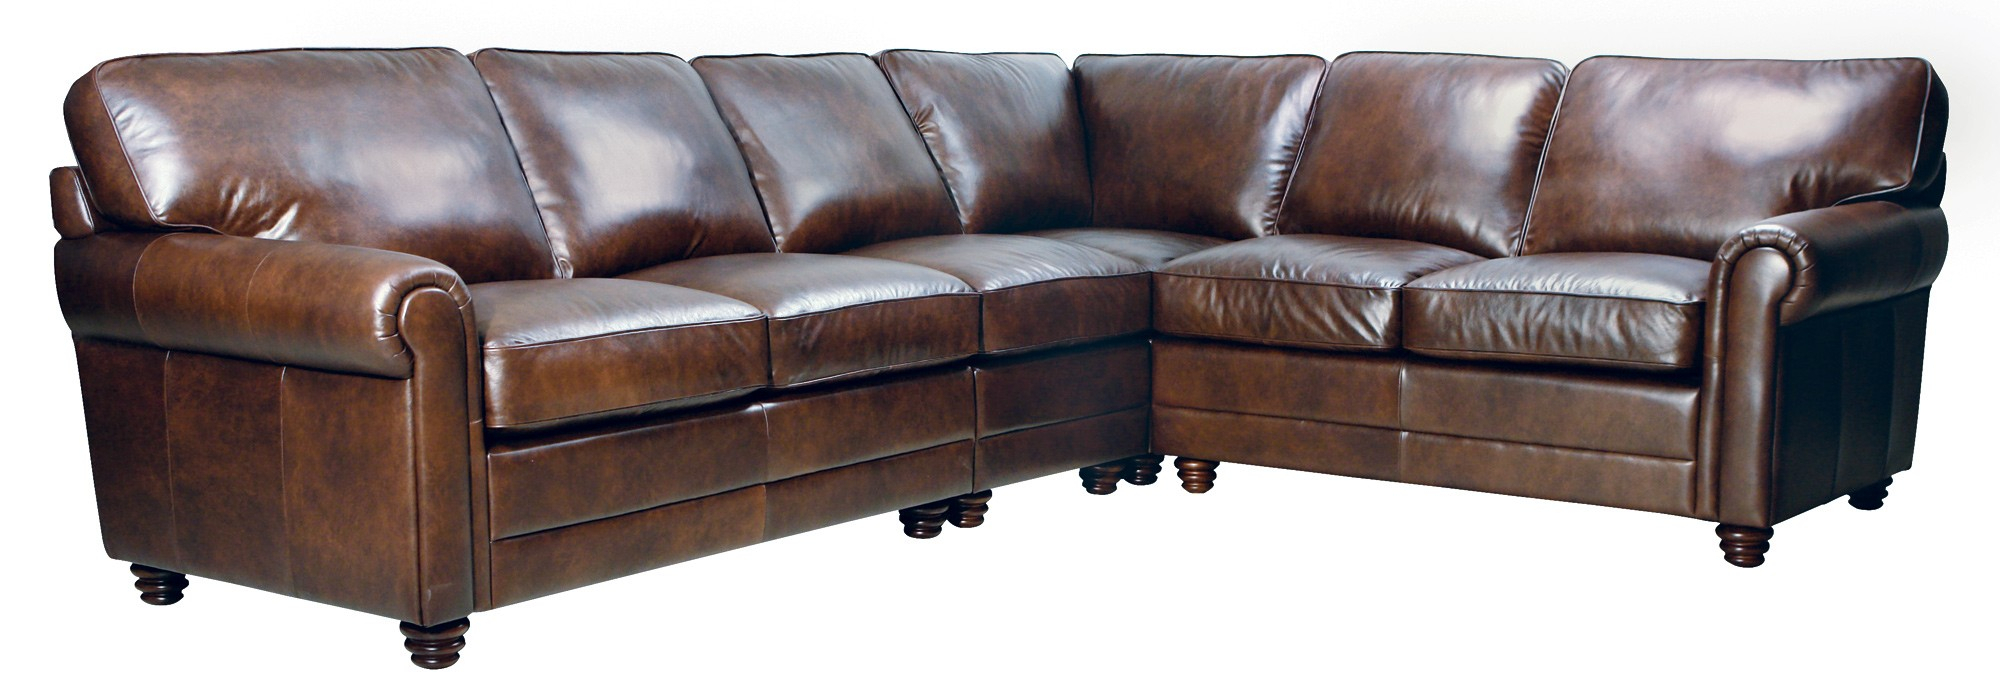 Andrew Sectional – Luke Leather Furniture Throughout Andrew Leather Sofa Chairs (Image 10 of 20)